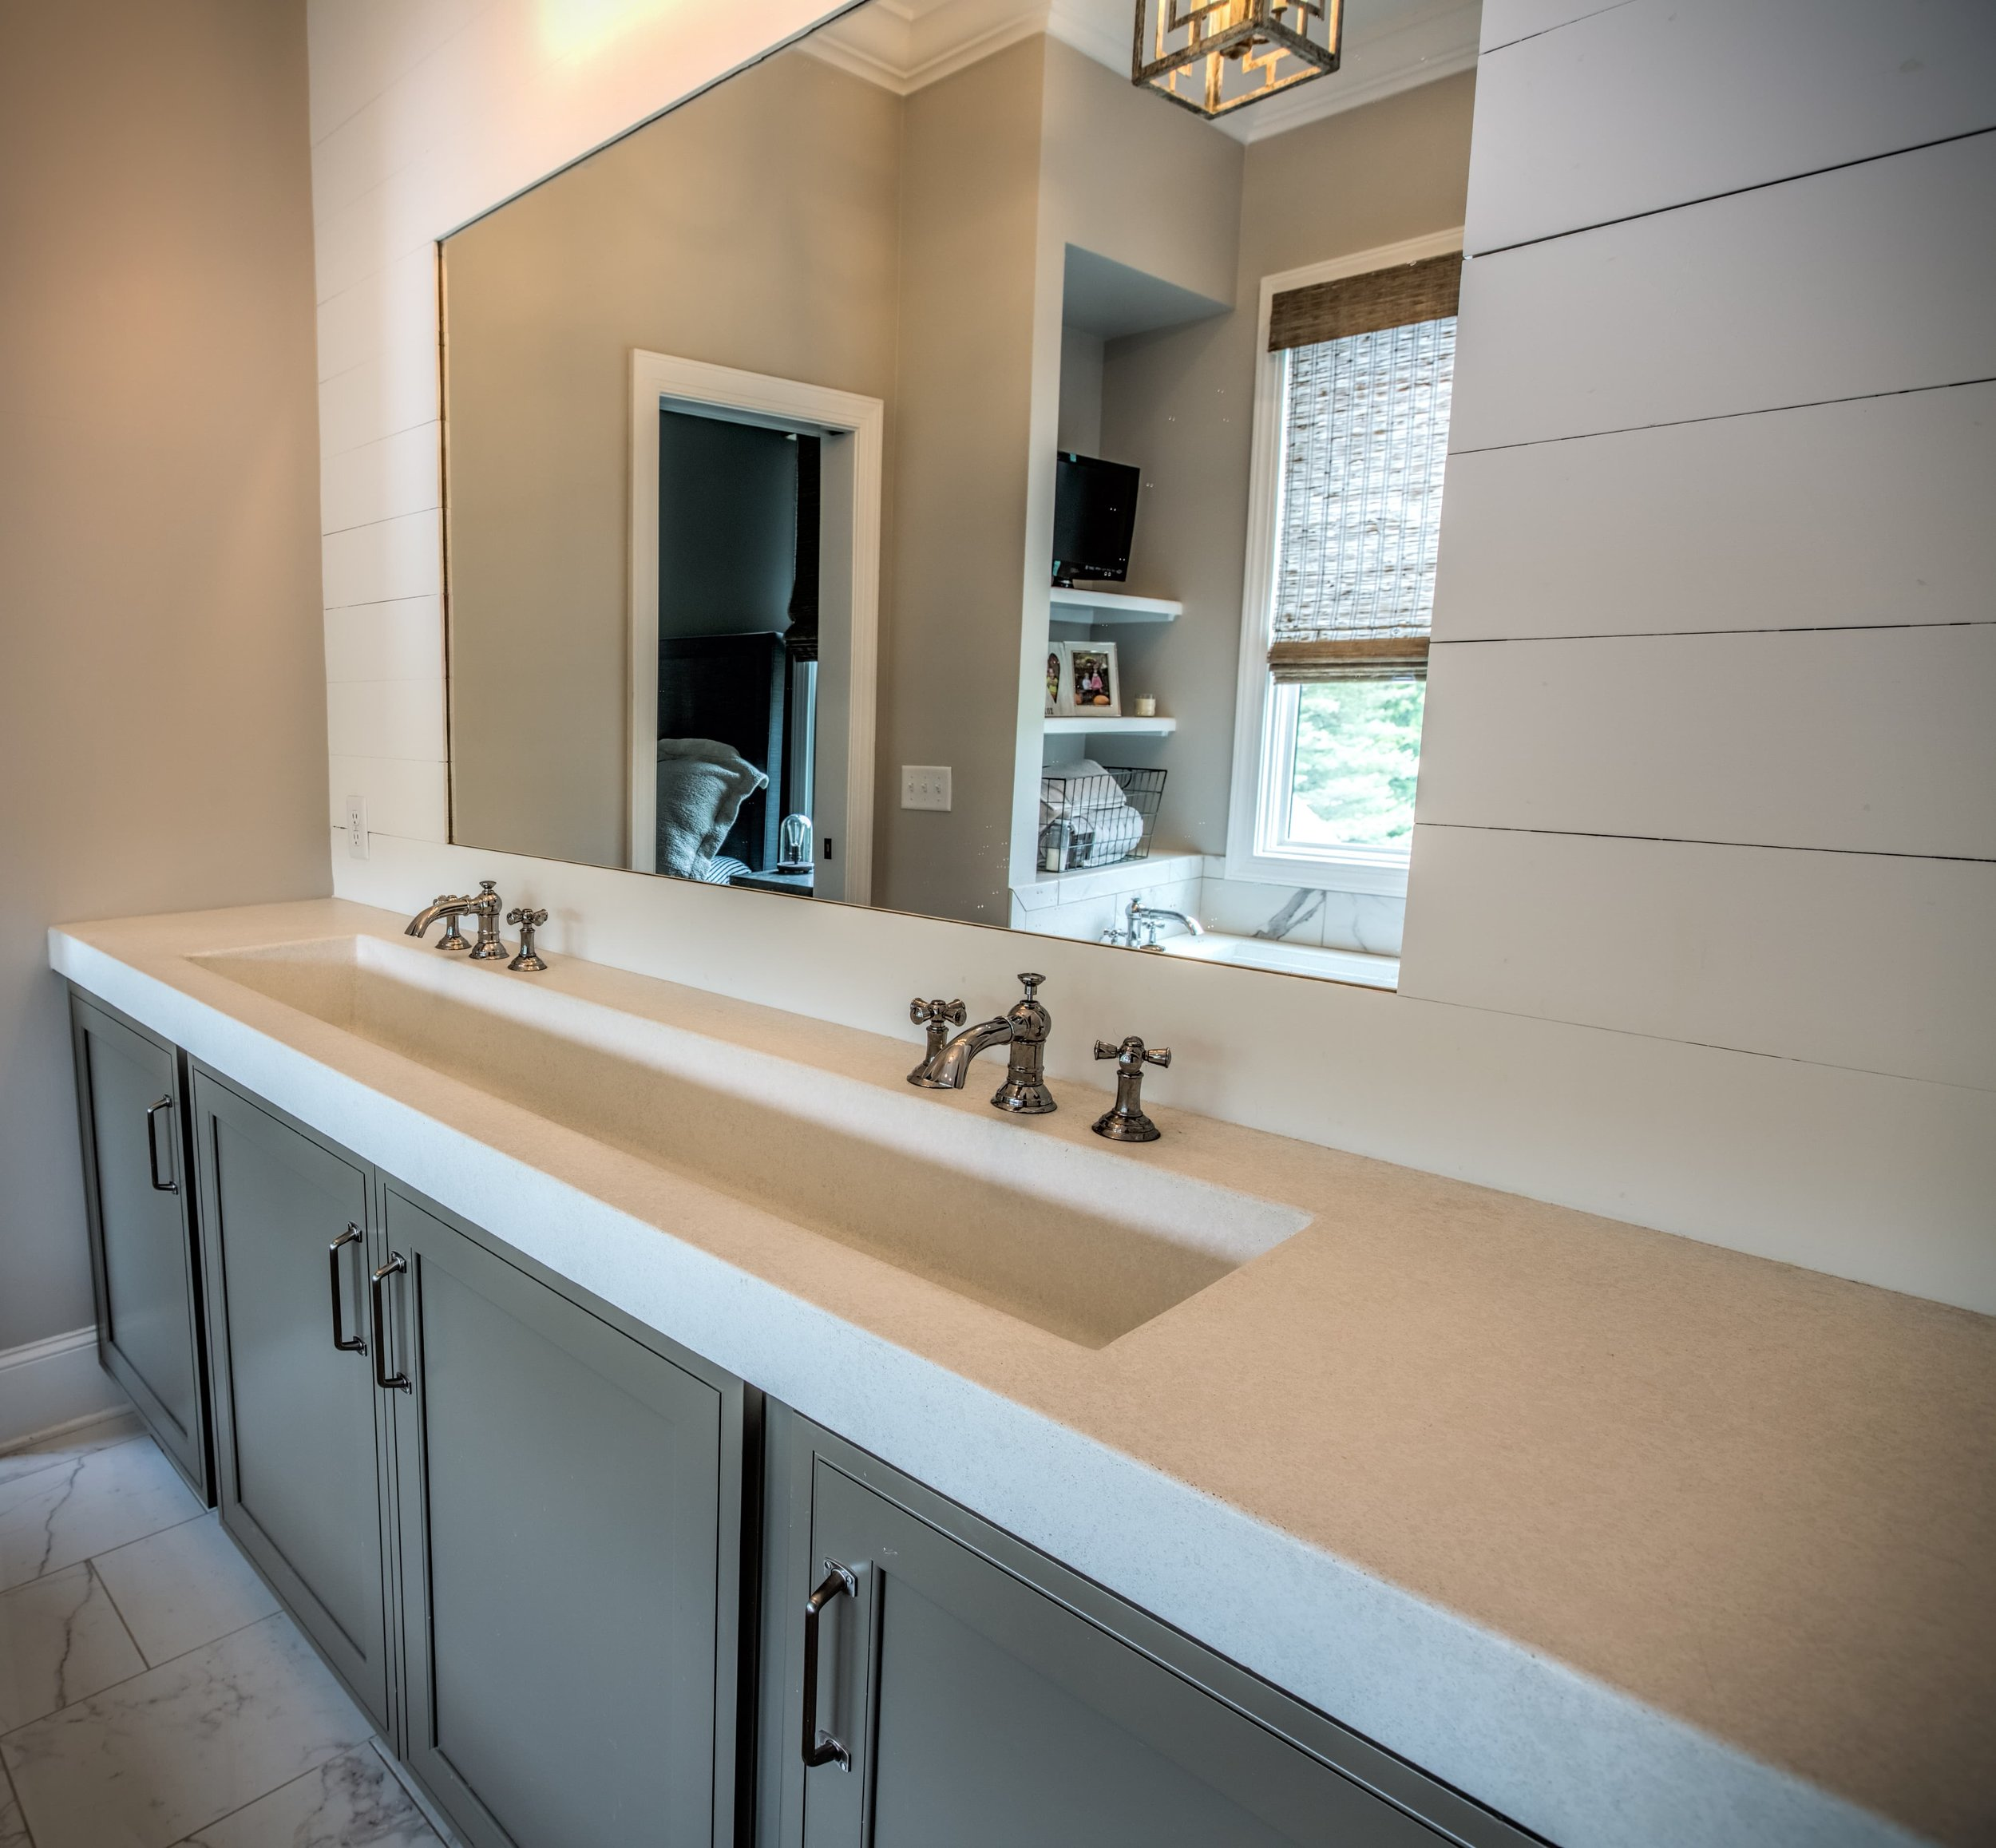 A single large integrated sink basin is a nice clean touch to this double vanity. #residential